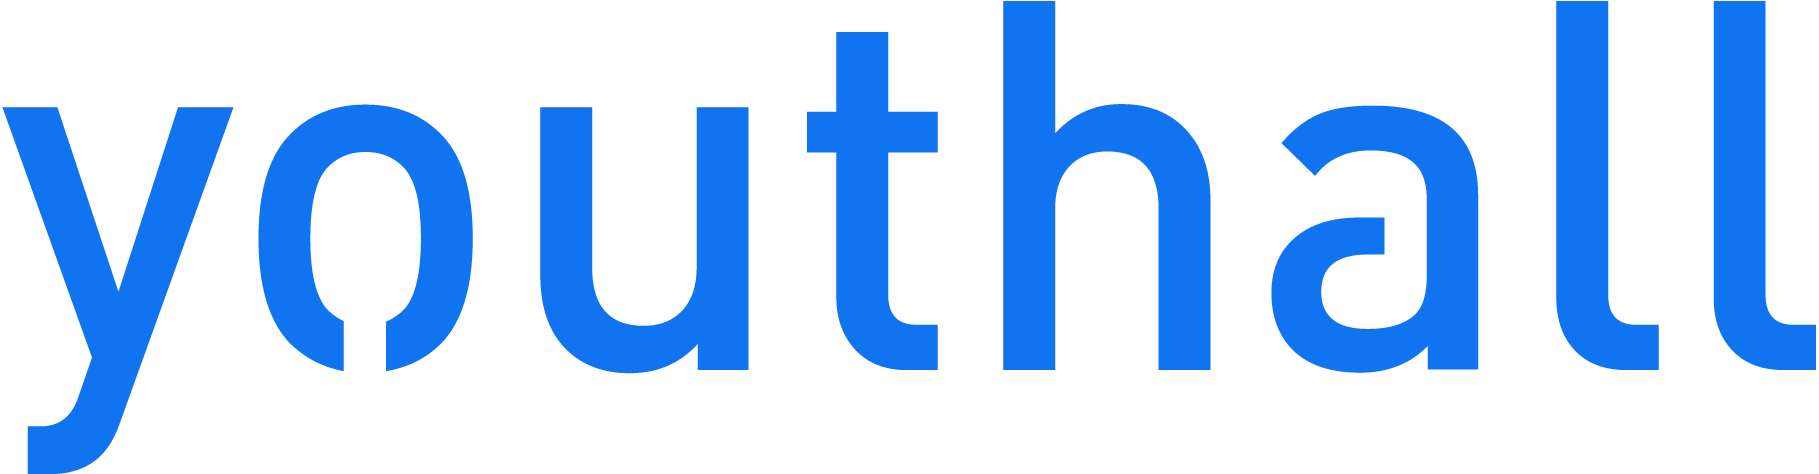 Youthall Logo Register